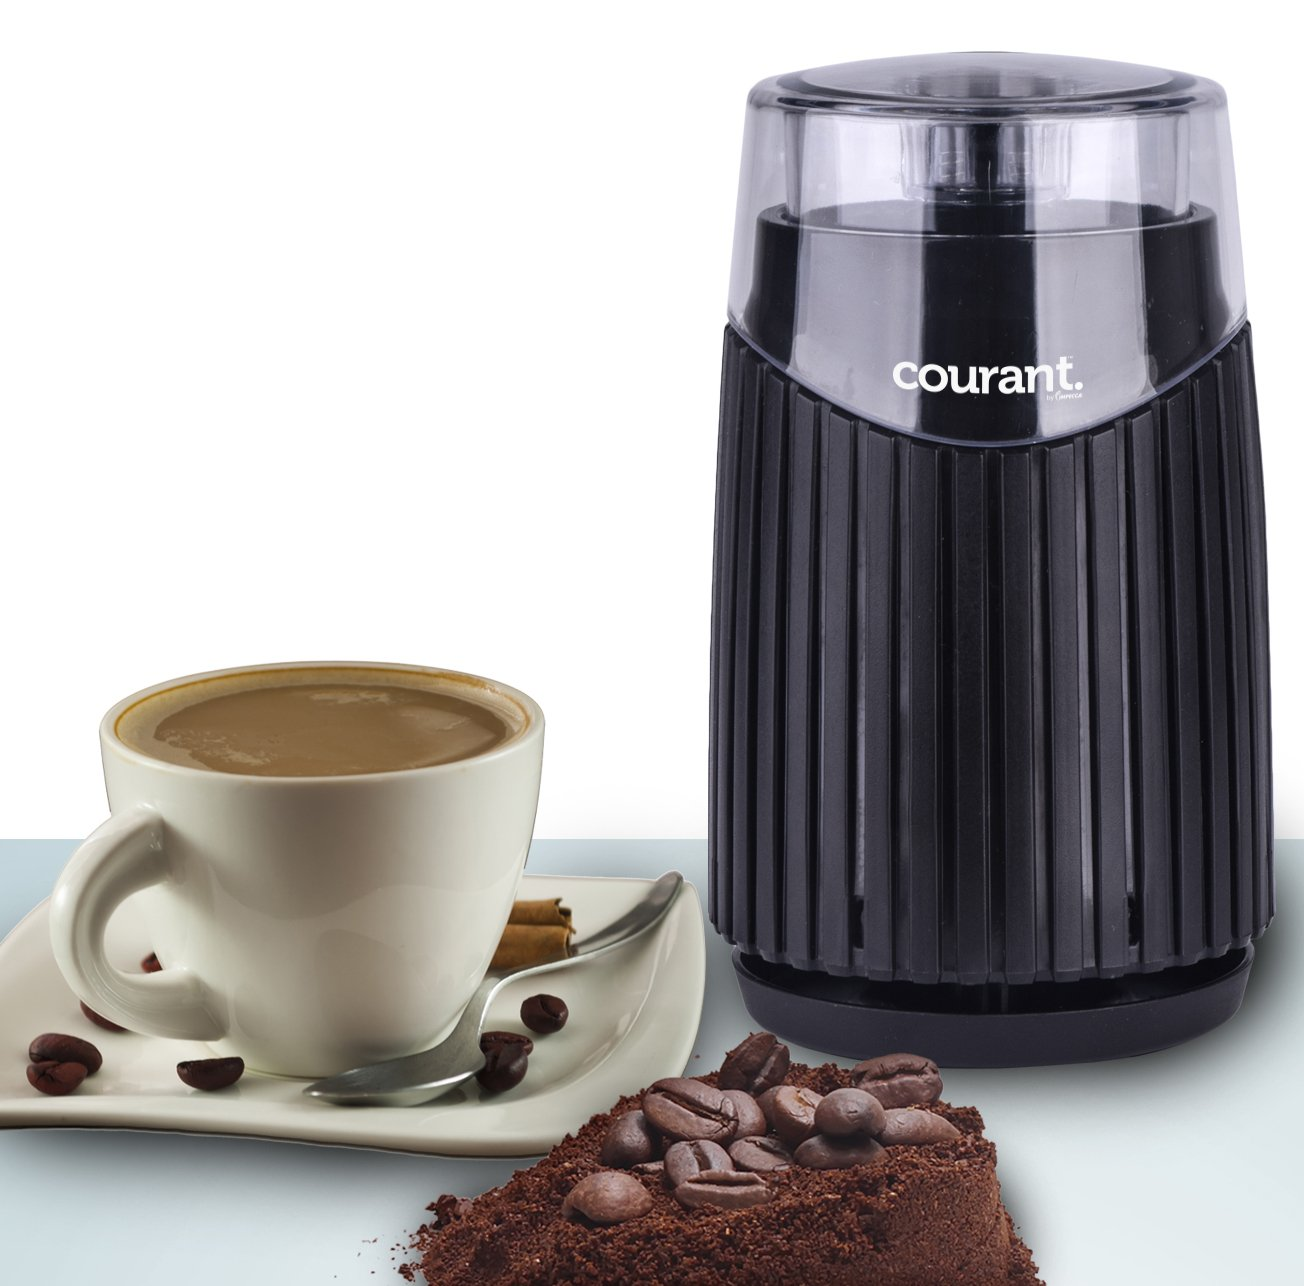 Courant Electric Coffee Grinder, Stainless steel bowl and blades Grinds Coffee, Beans & Spices, Black